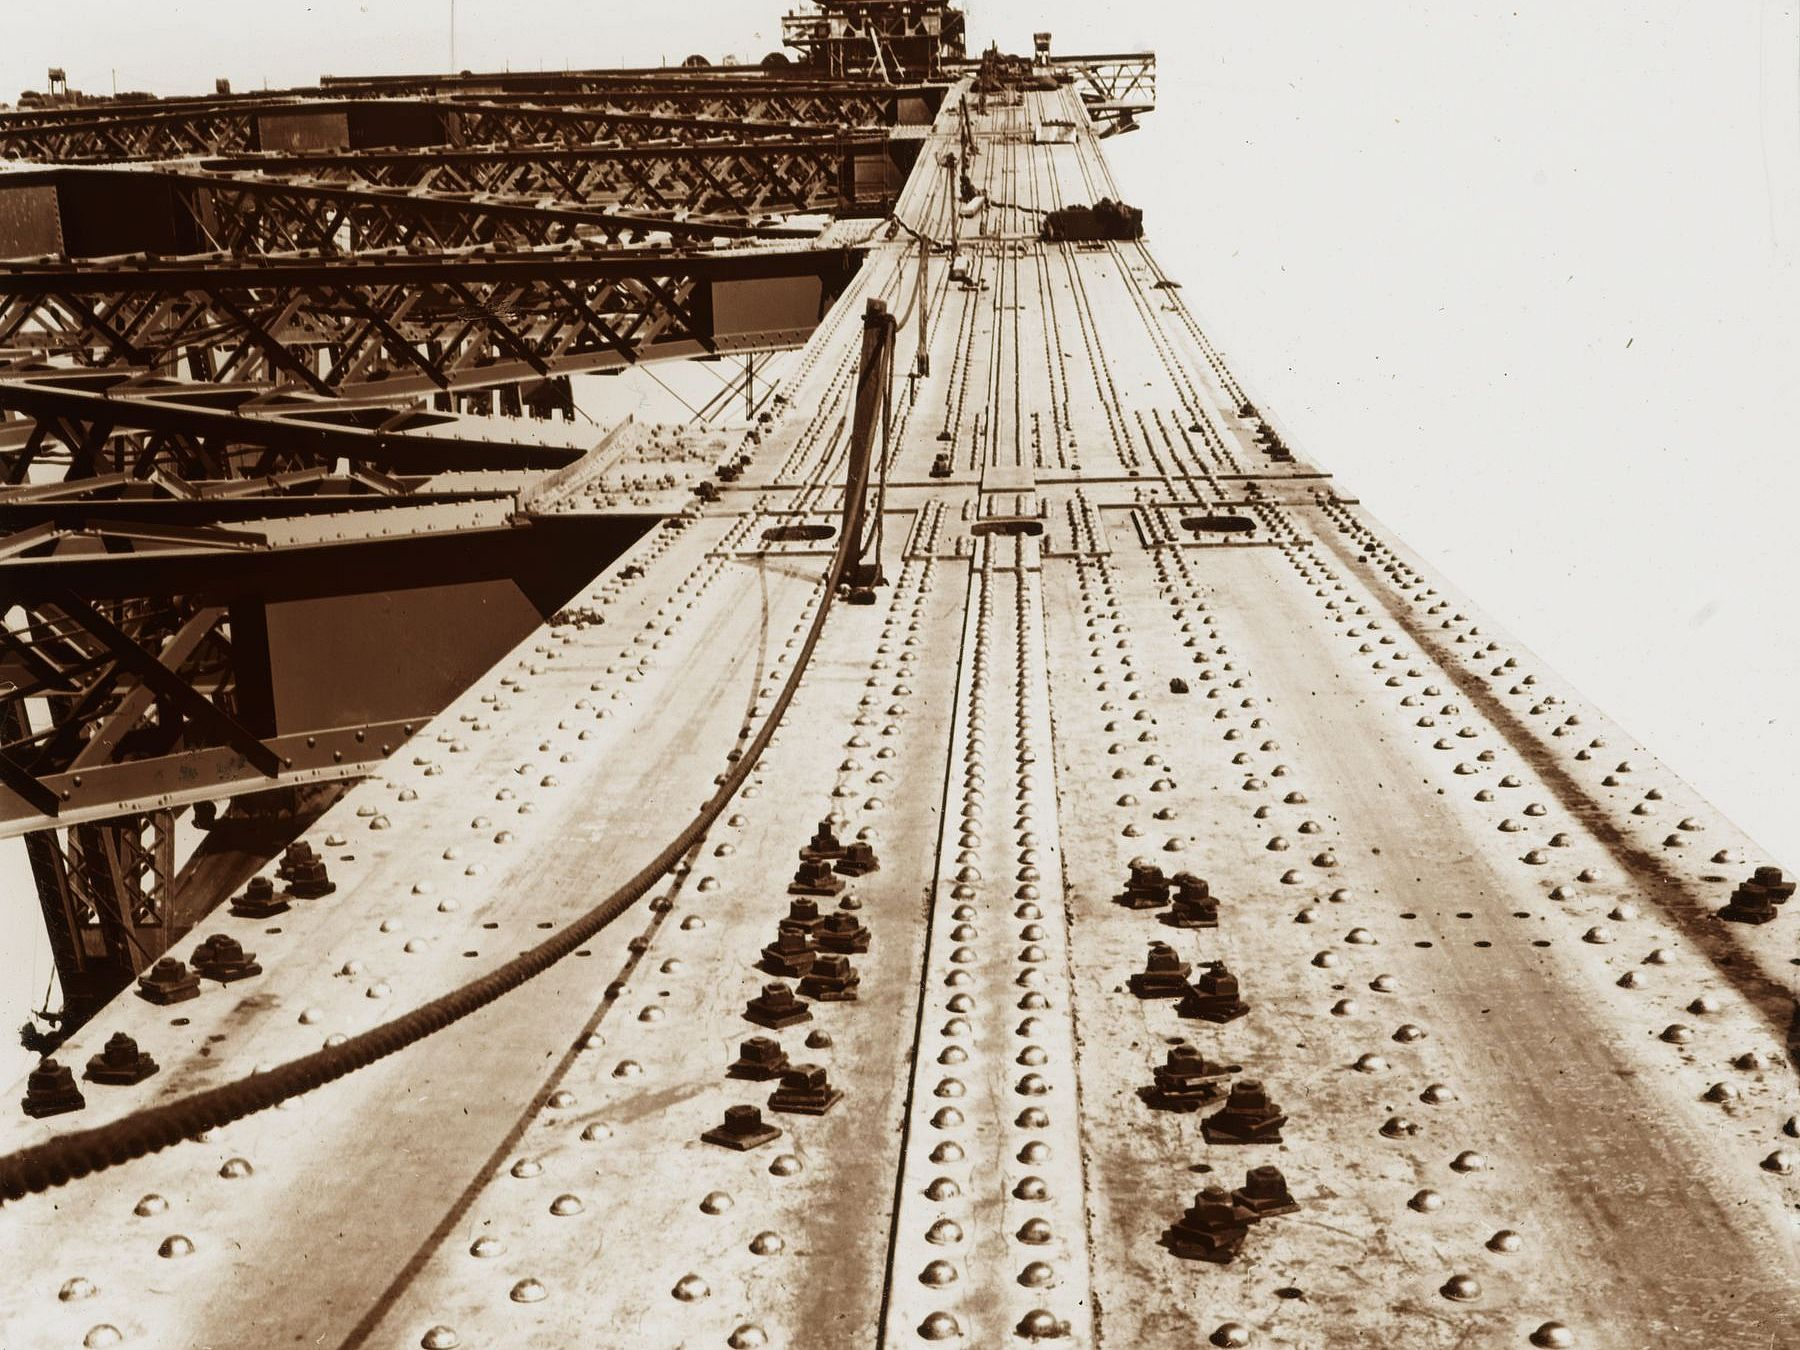 Looking up the top chord of the arch, photo and slide by Rev. Frank Cash. Item 02: Box 7 Slides of Harbour Bridge during construction, ca. 1930-1932